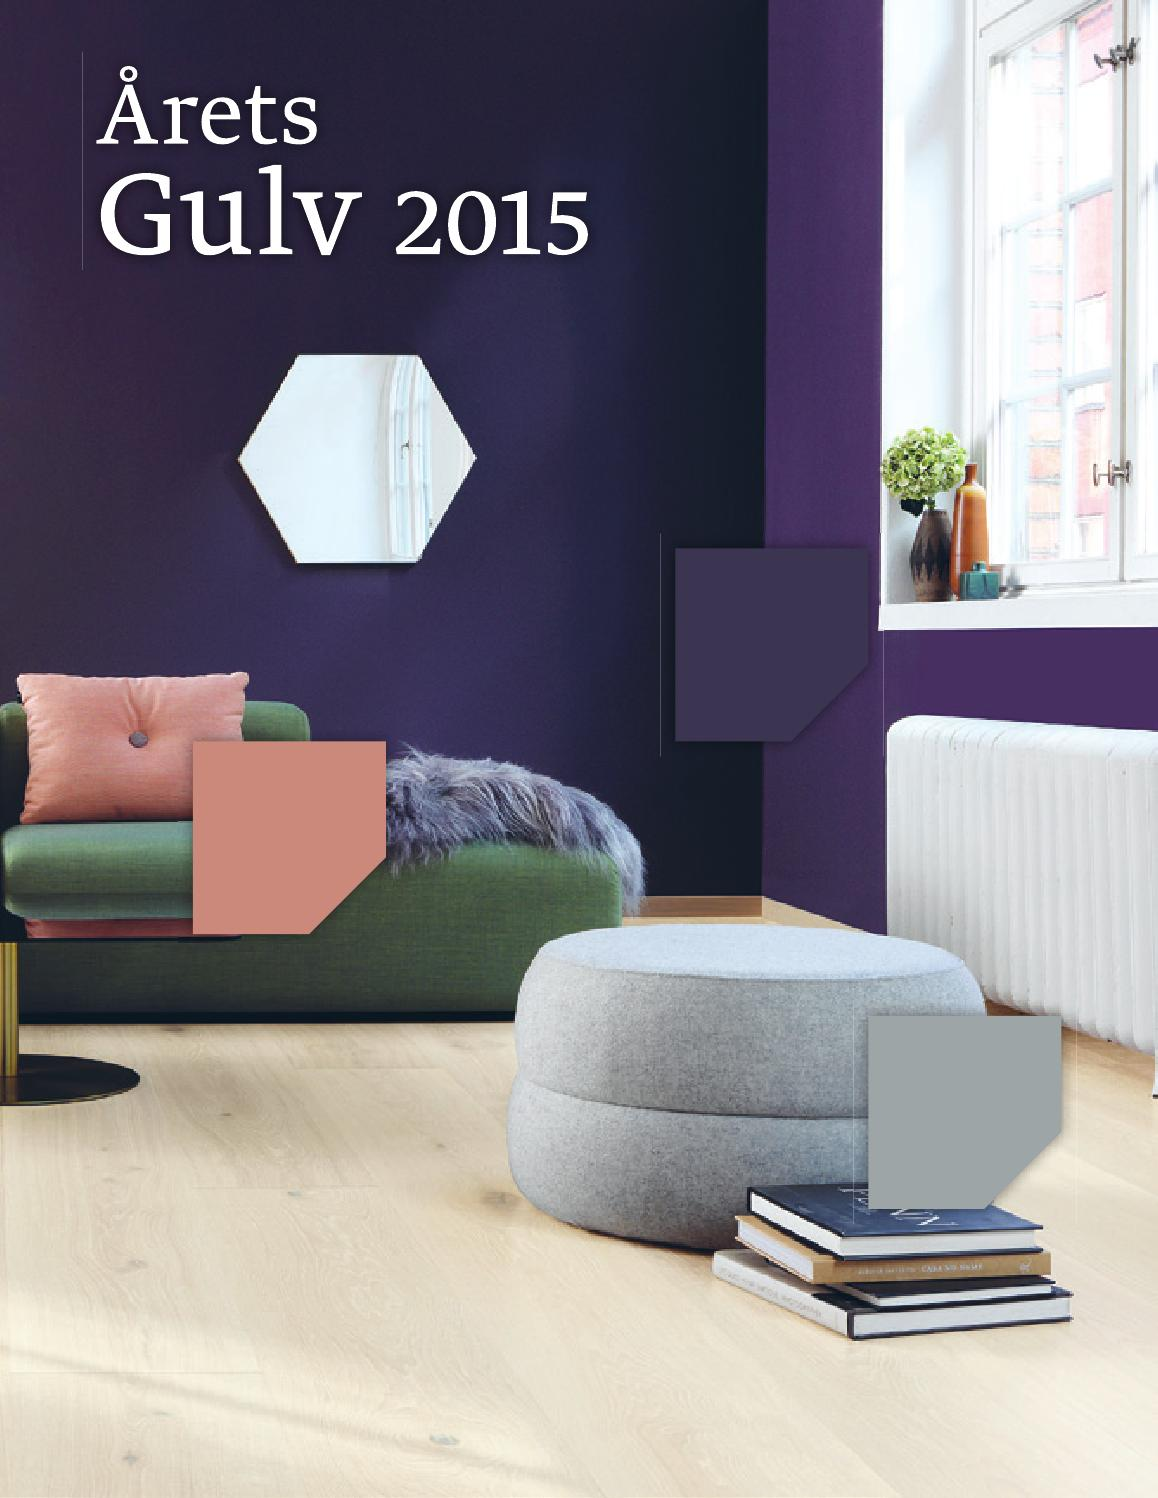 Årets gulv 2015 by fargerike norge   issuu